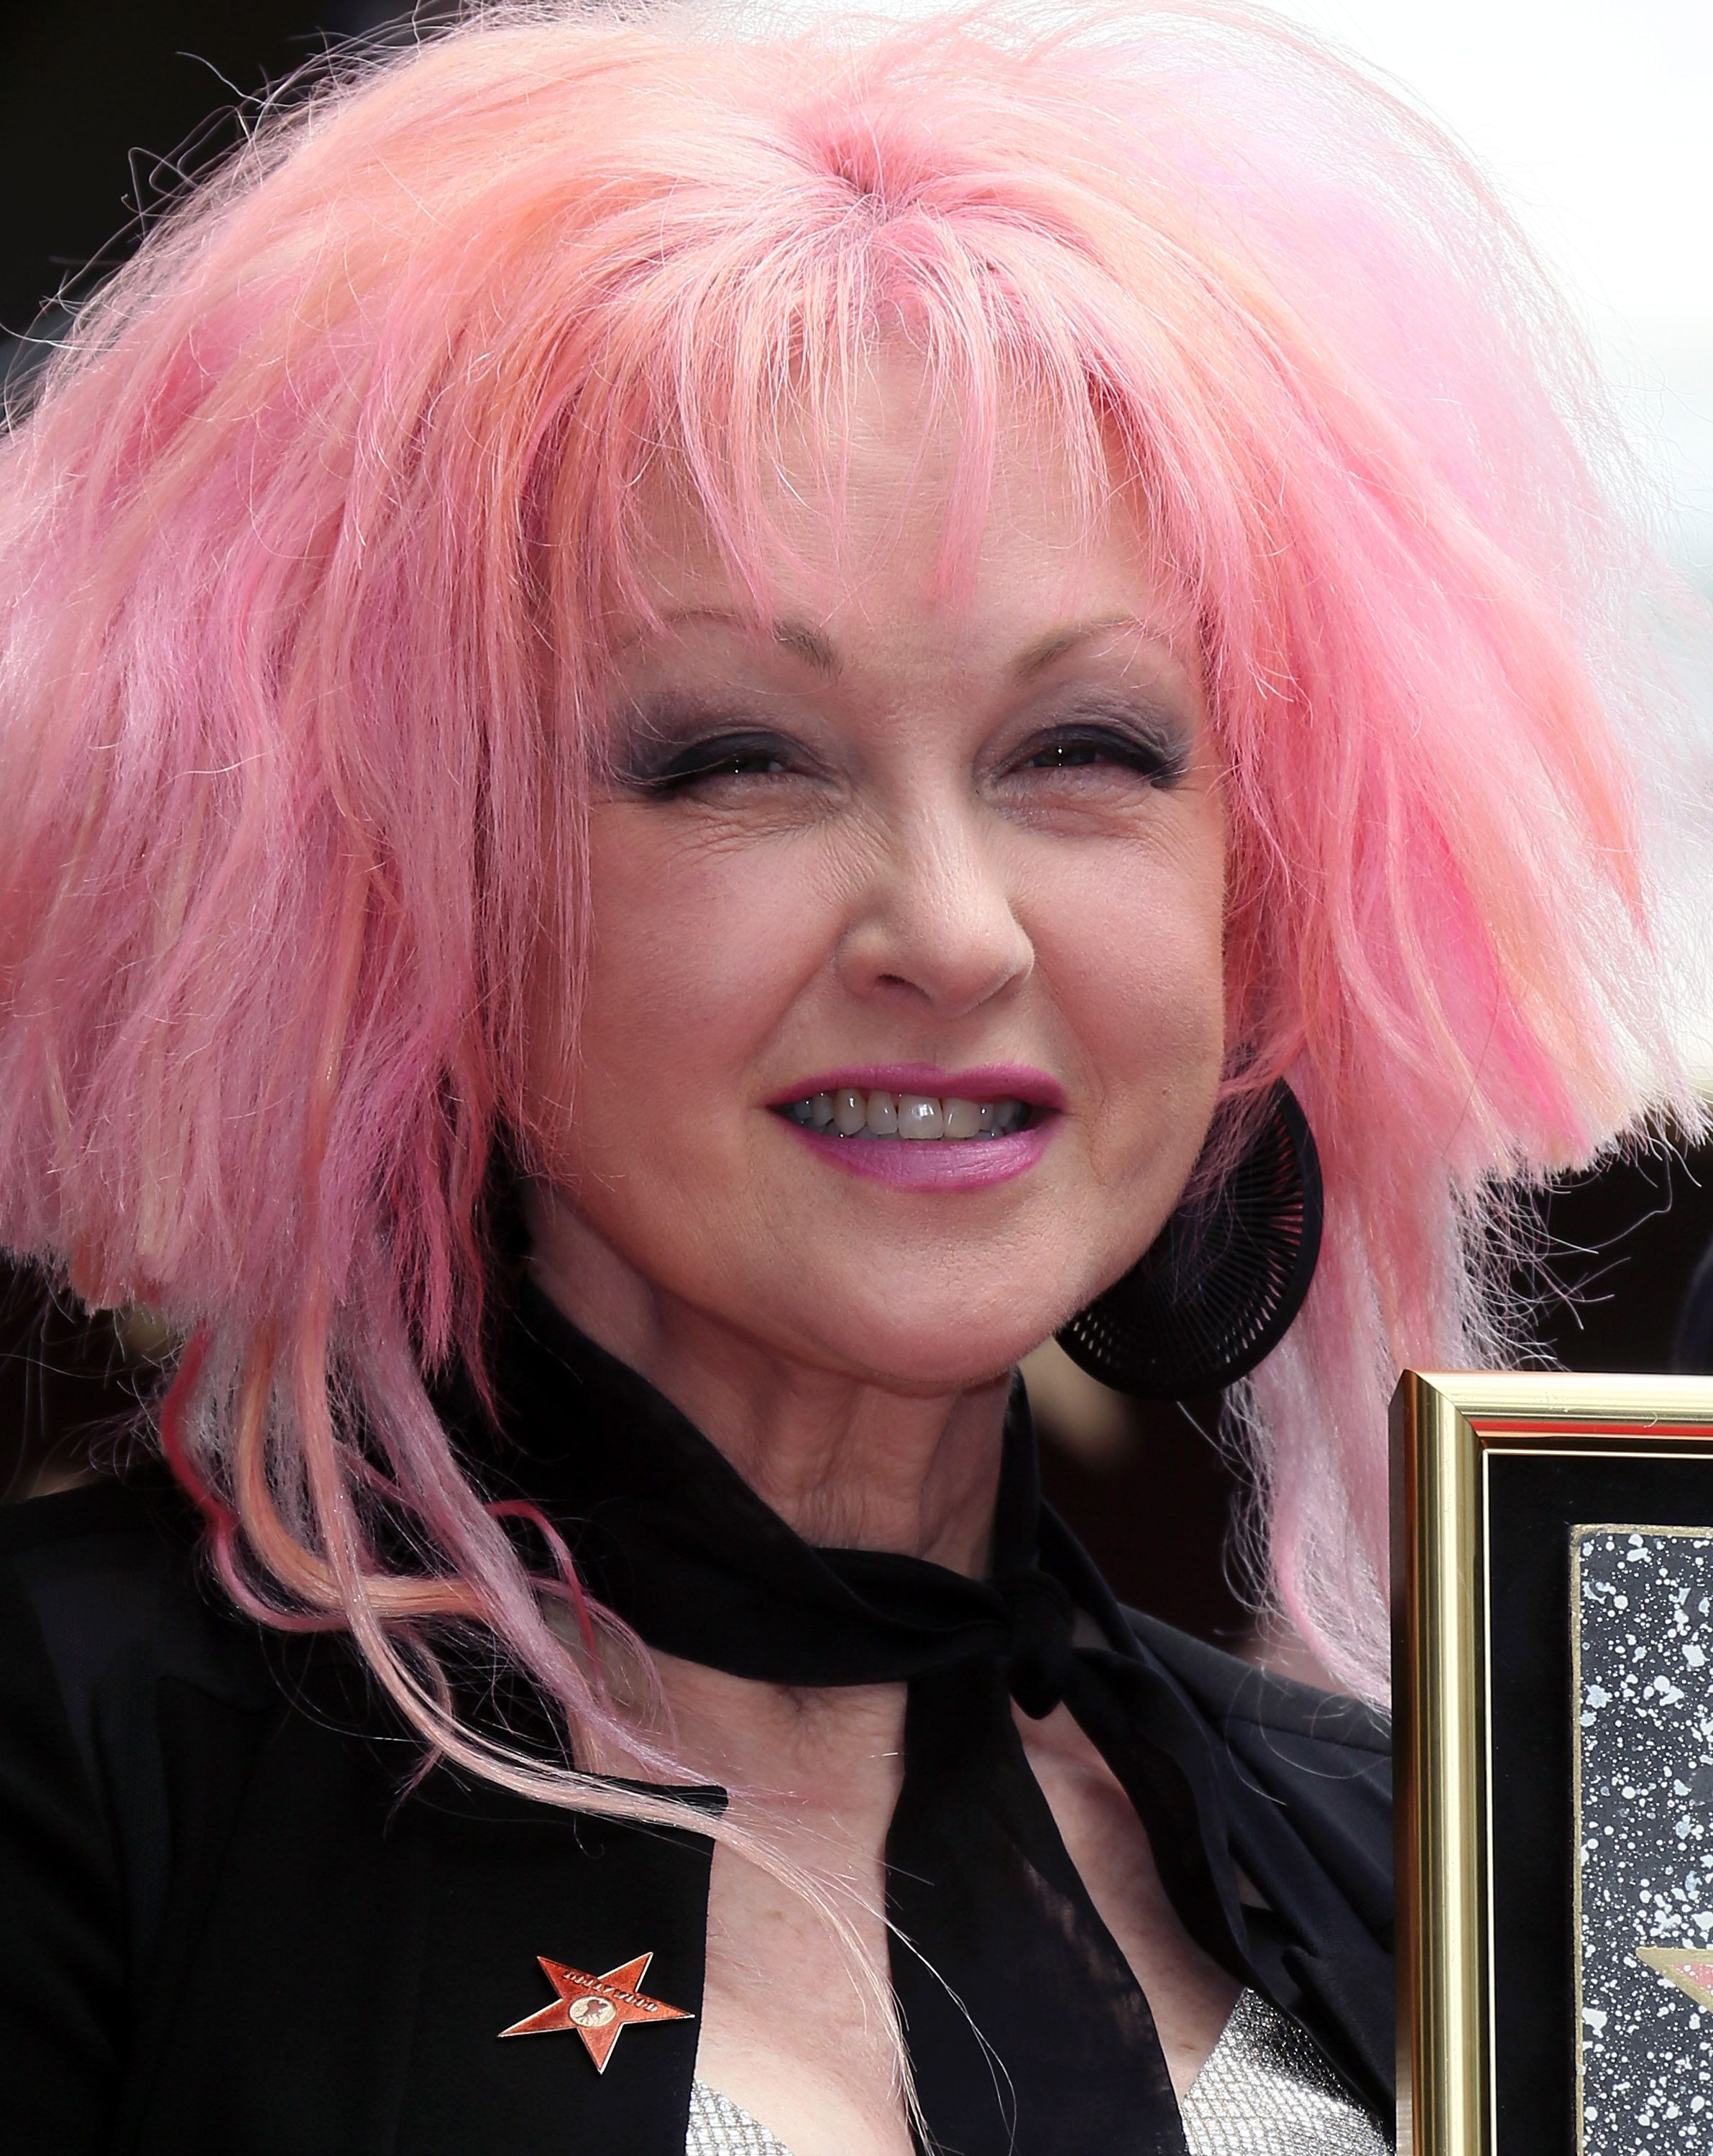 HOLLYWOOD, CA - APRIL 11:  Singer Cyndi Lauper attends Cyndi Lauper and Harvey Fierstein being honored with a Double Star ceremony on the Hollywood Walk of Fame on April 11, 2016 in Hollywood, California.  (Photo by David Livingston/Getty Images)